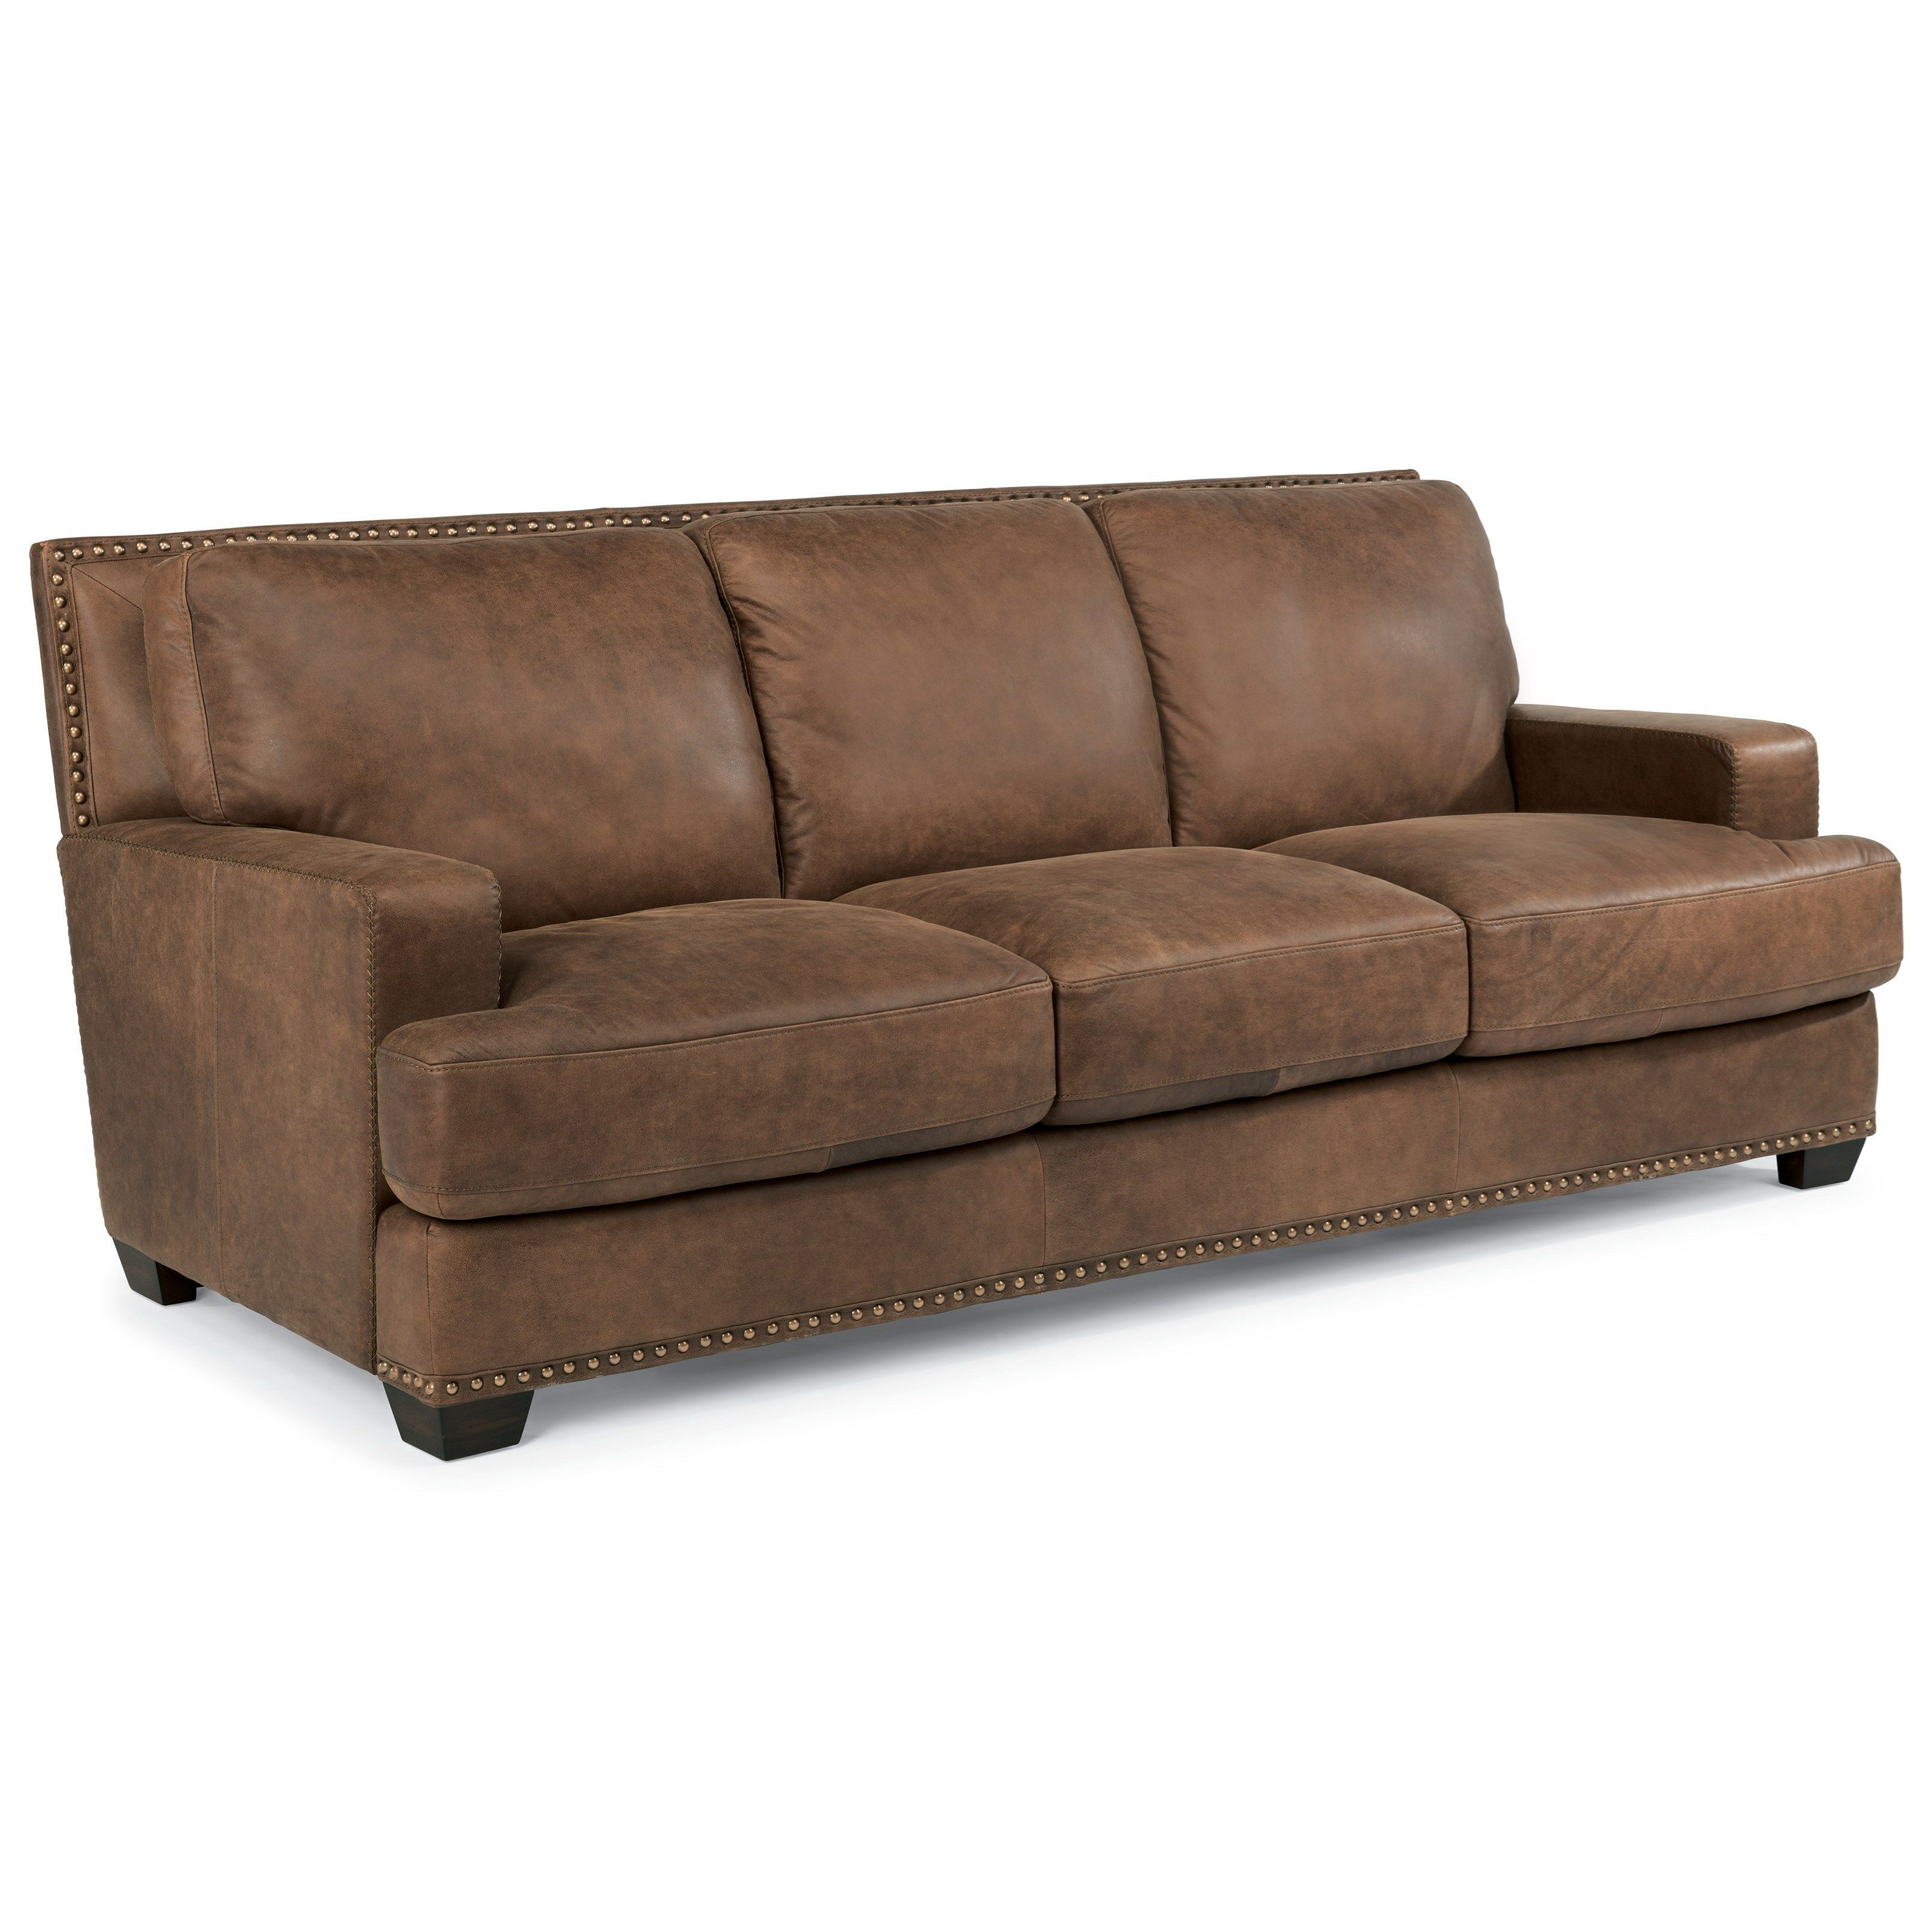 room couches living by couch pinterest patterson flexsteel rooms sofa pin